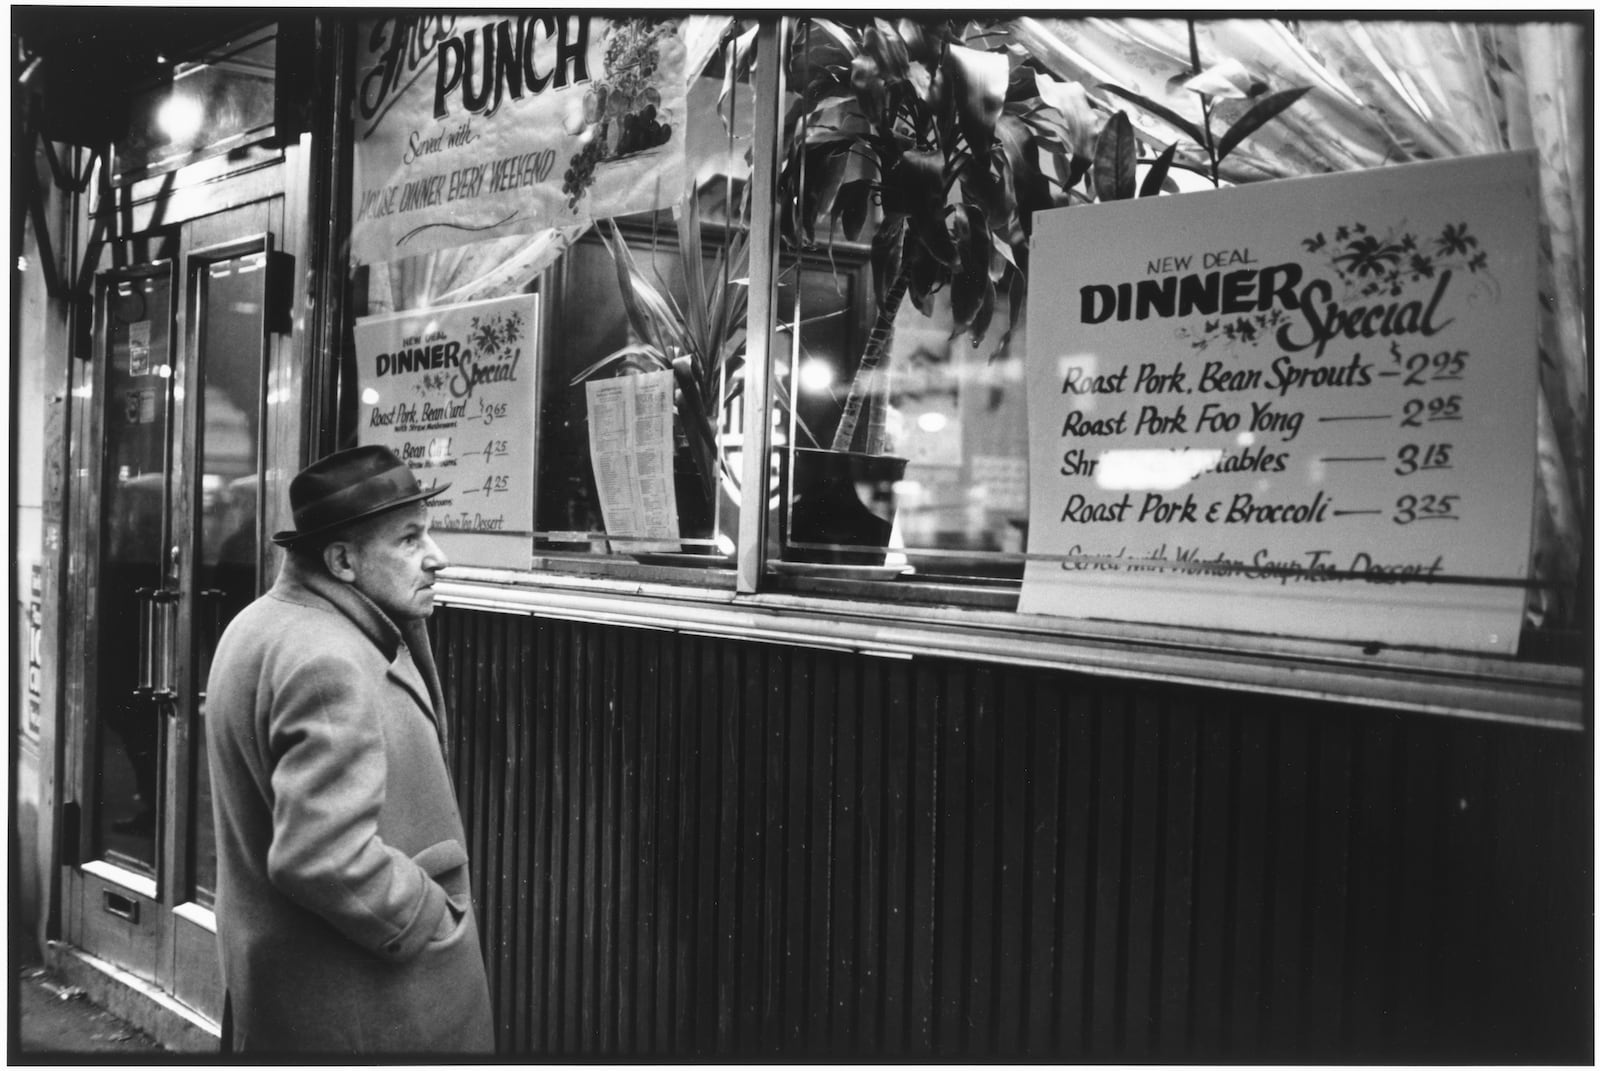 Tom Arndt, Reading the menu, Brighton Beach, New York, 1982